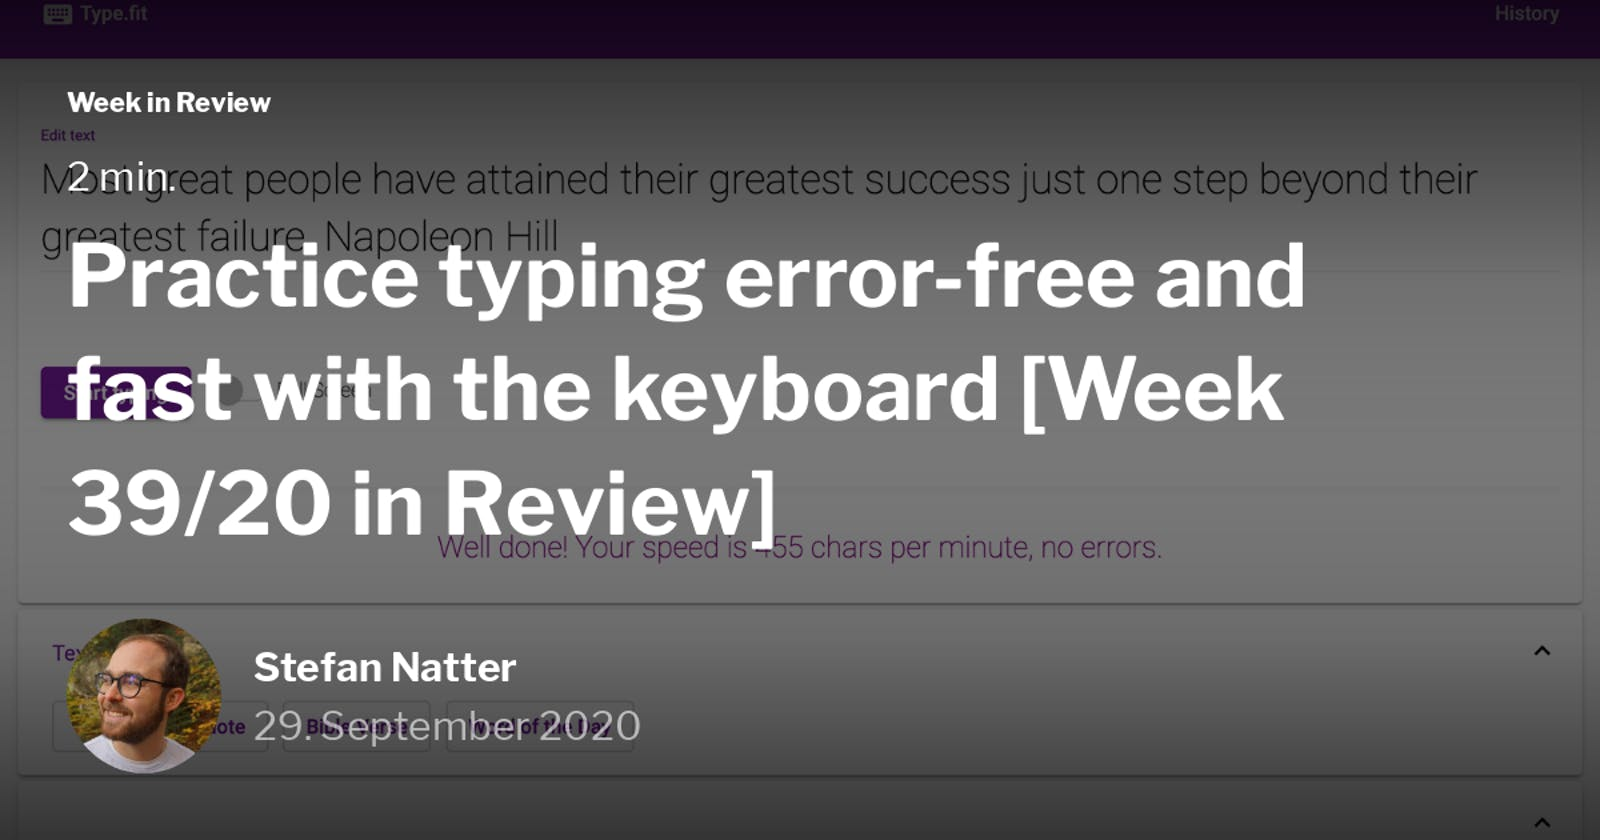 Practice typing error-free and fast with the keyboard [Week 39/20 in Review]